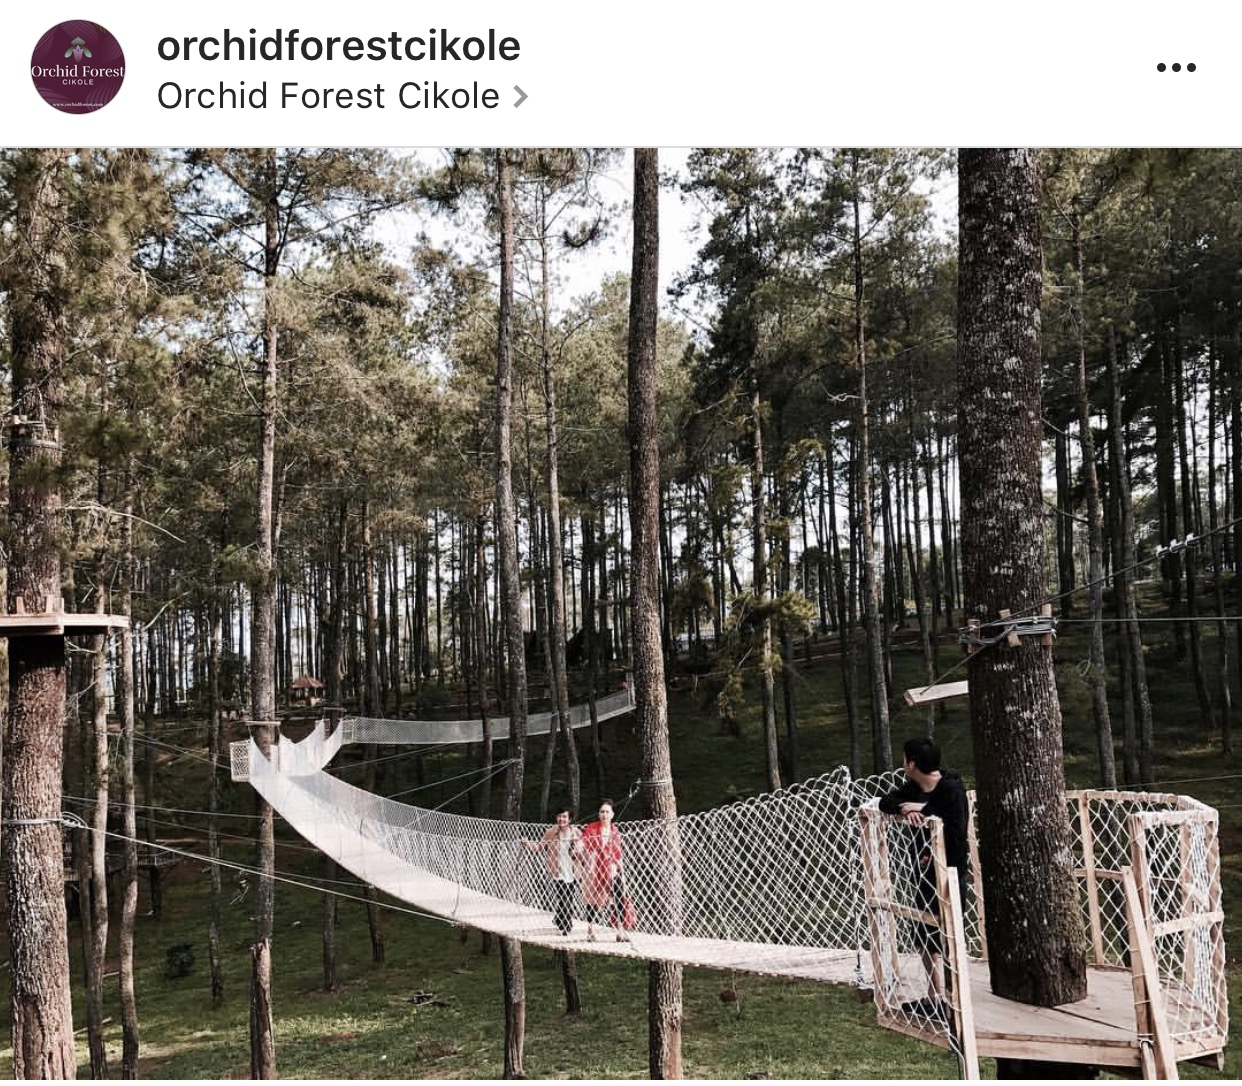 Orchid Forest Cikole Kids Holiday Spots Liburan Anak Informasi